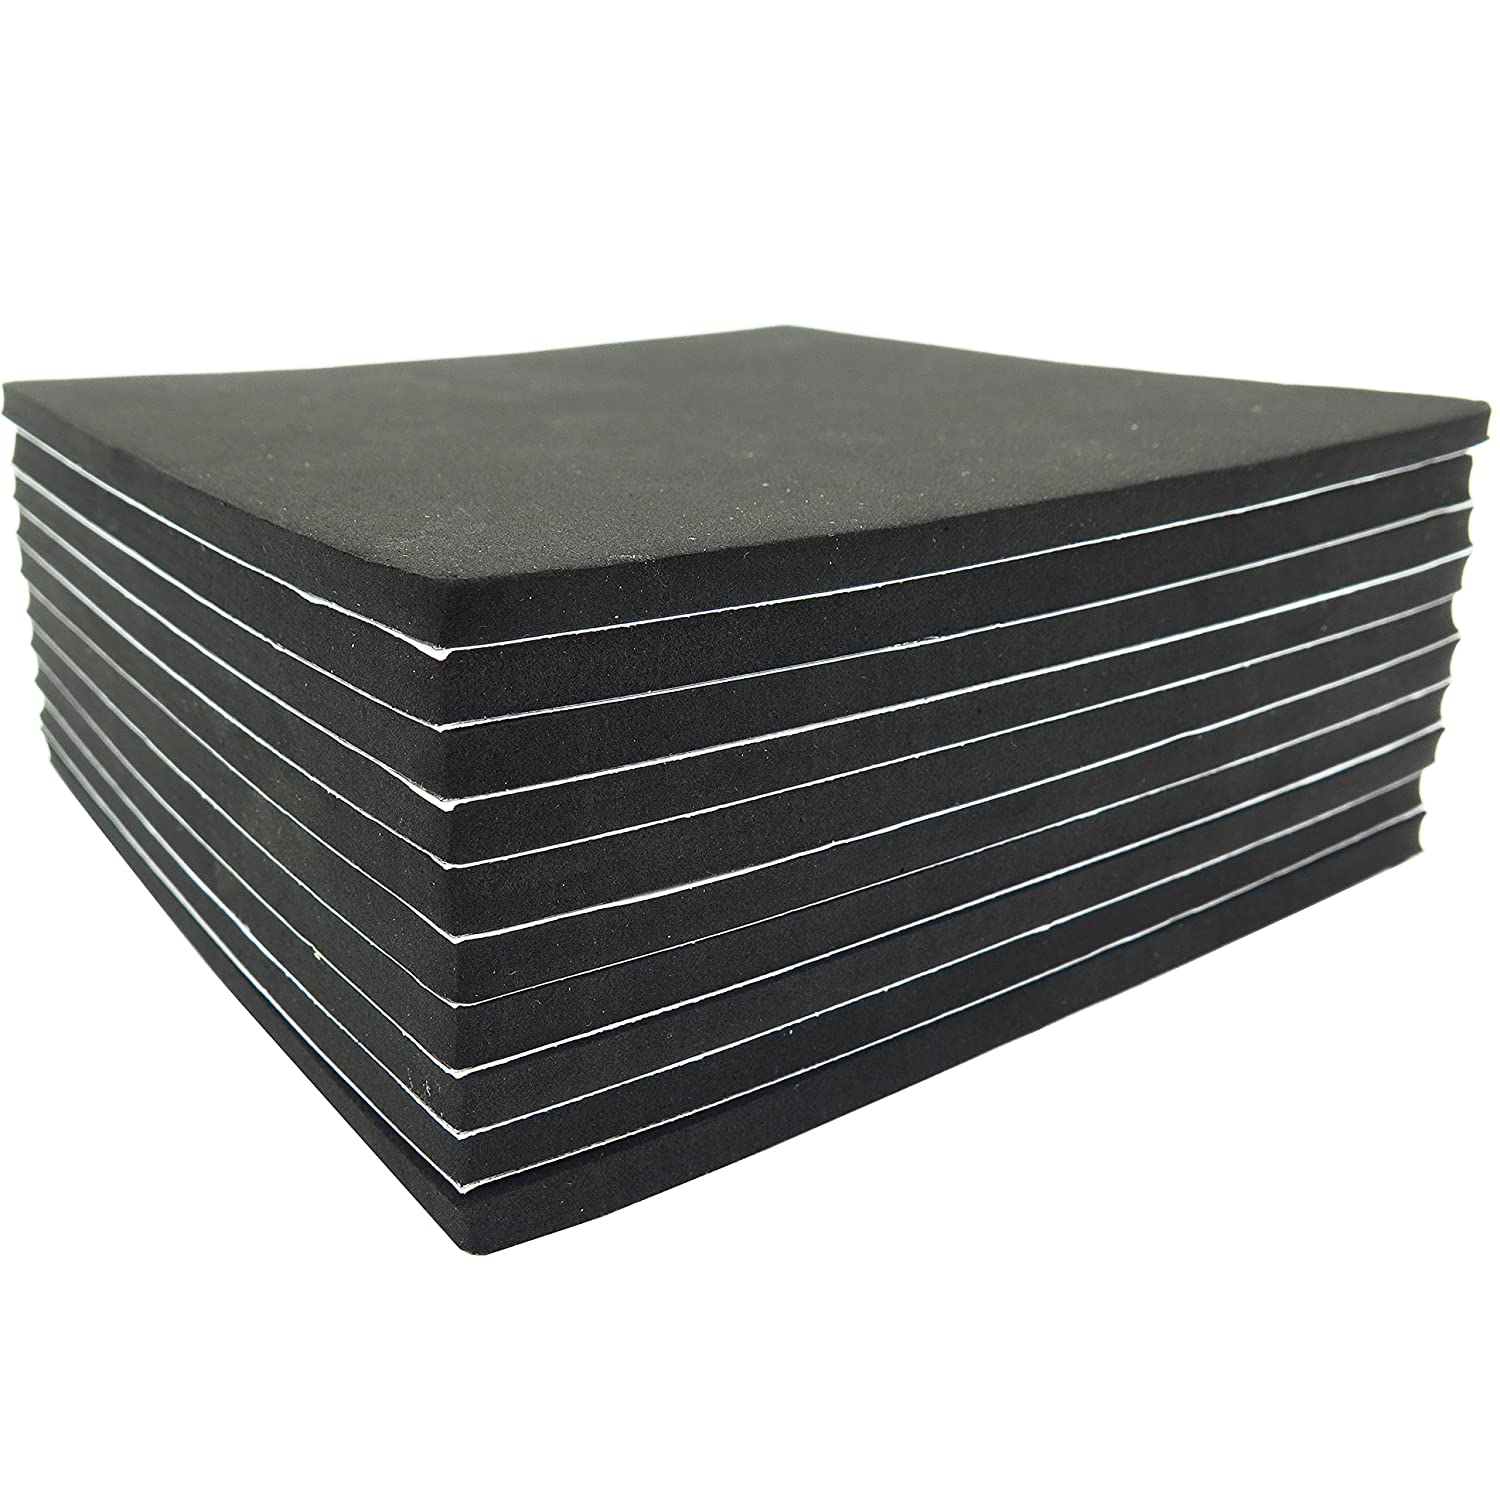 Neoprene Rubber Sheets 6in x 6in x 1 4in with Adhesive Backing 10pack